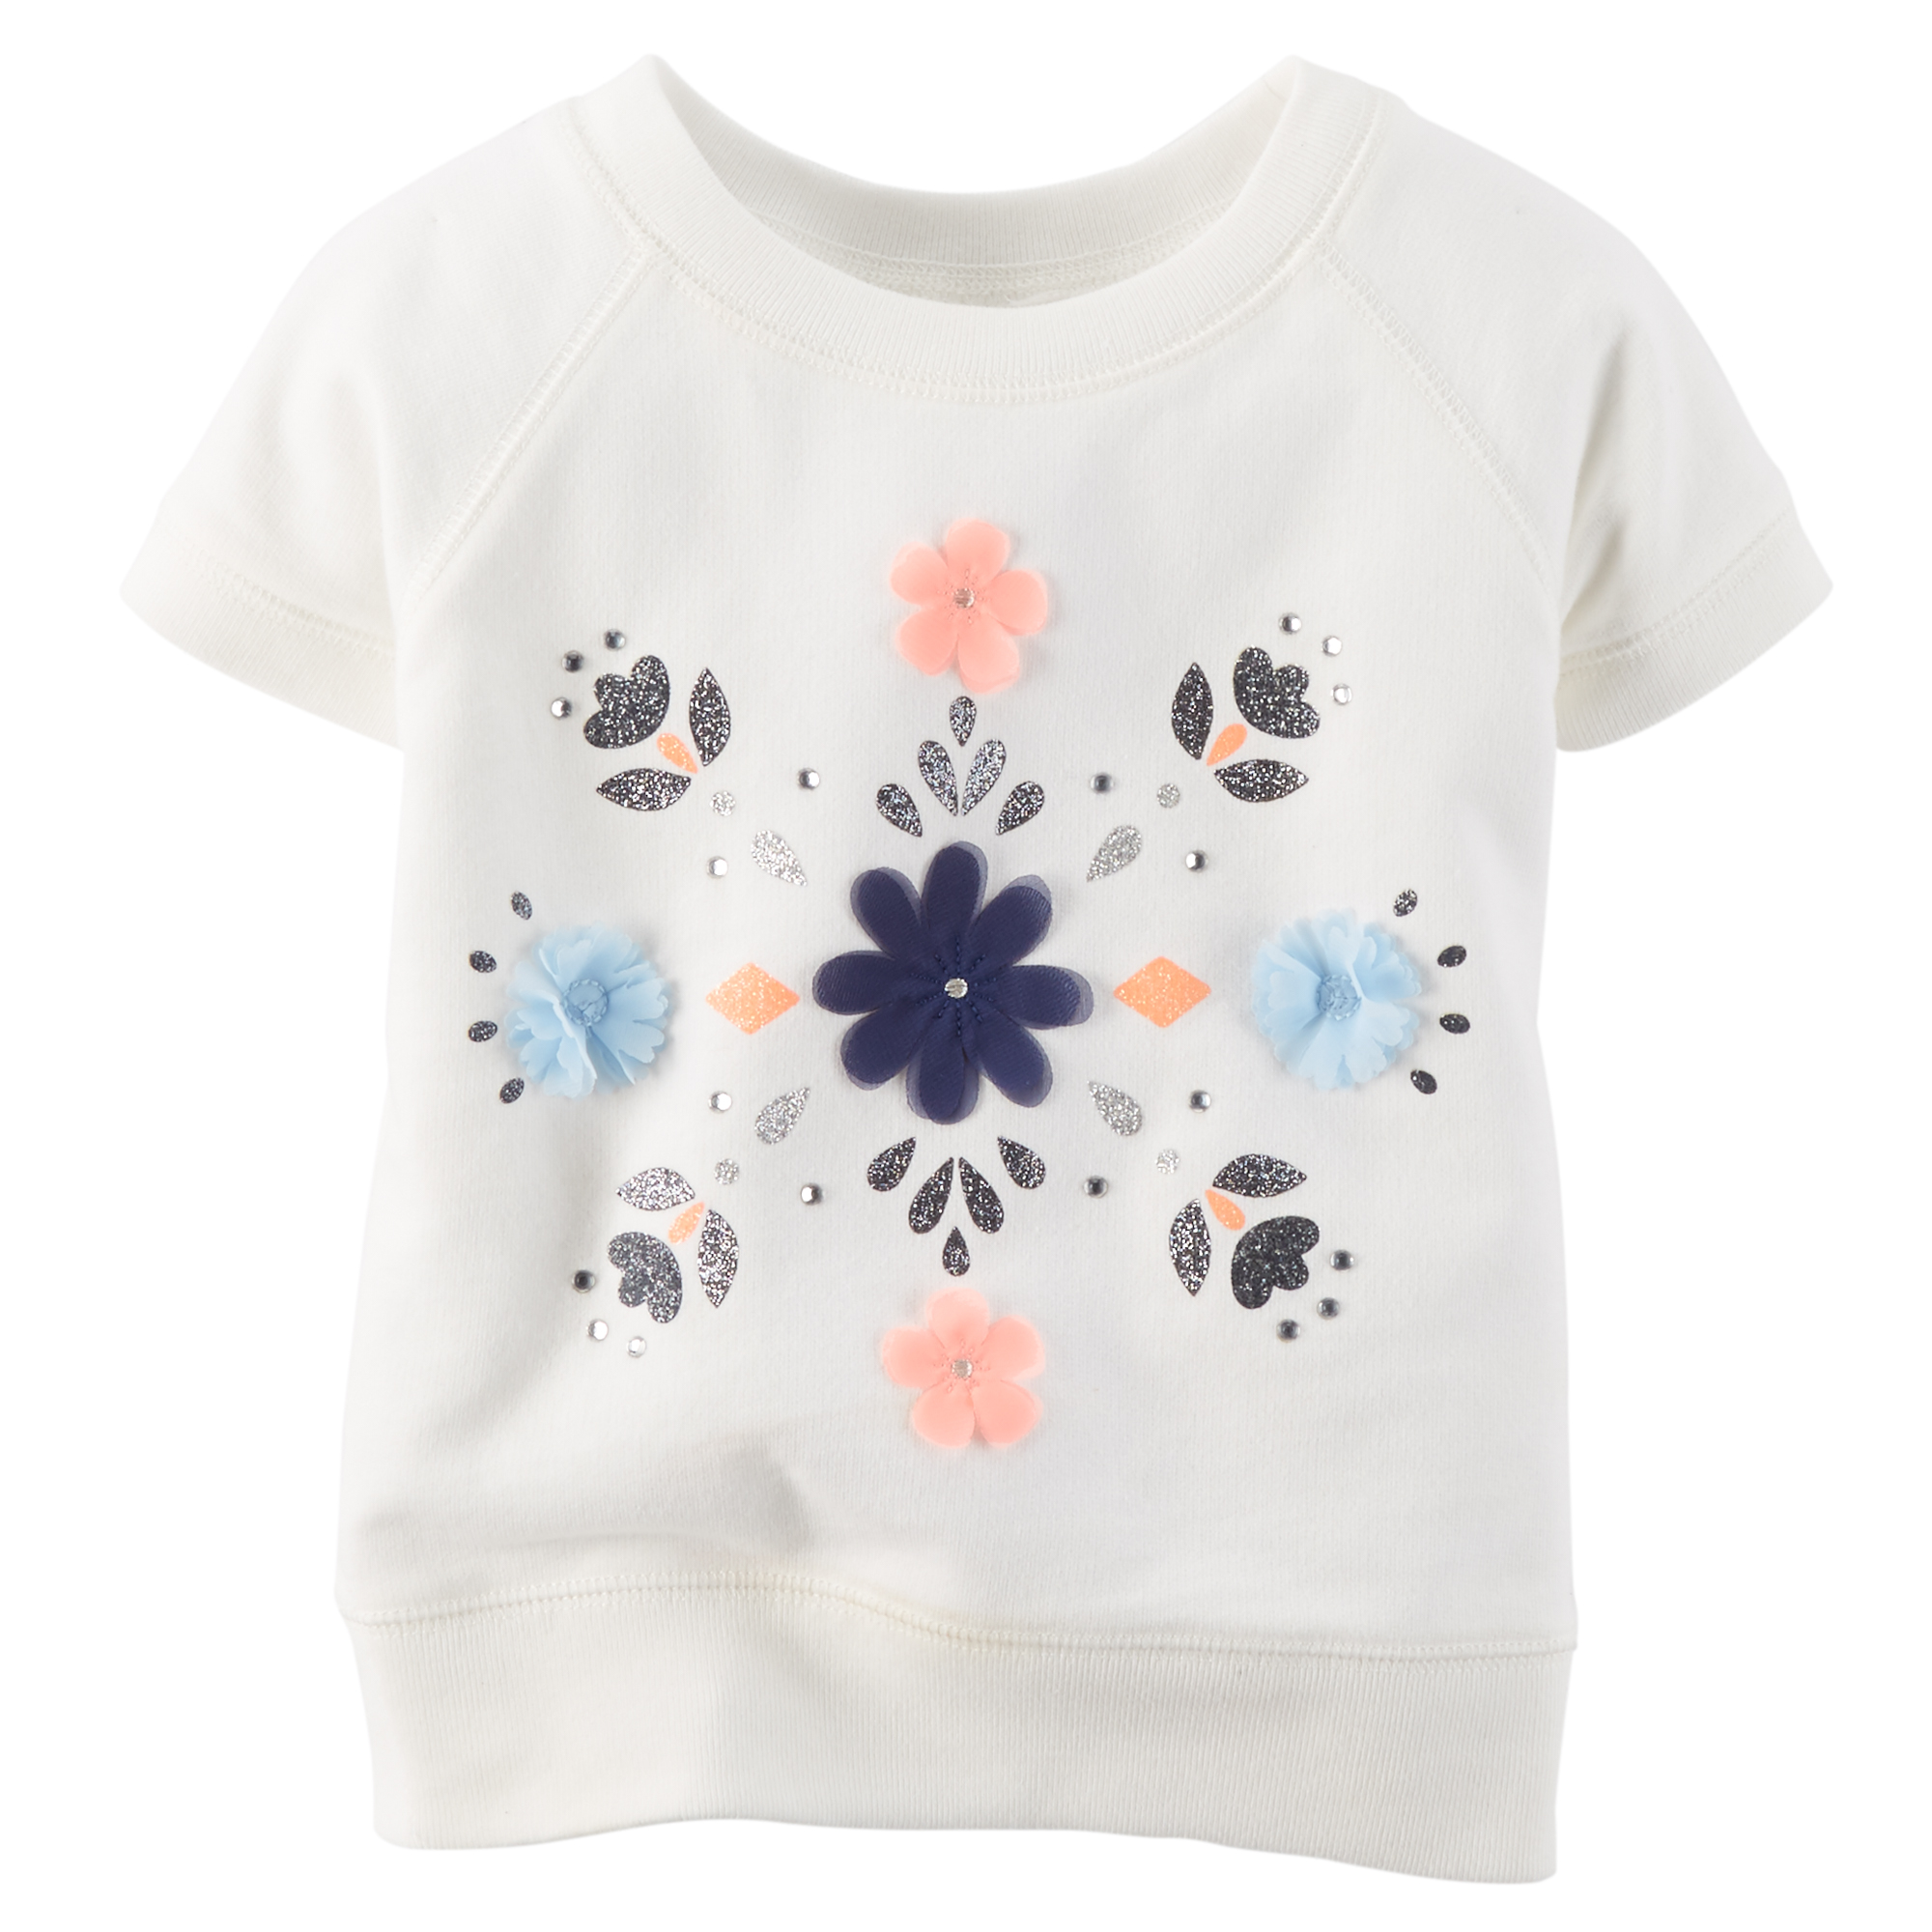 155a786df7c3 Carter's Pink & White Flower Graphic T-Shirt - Girl